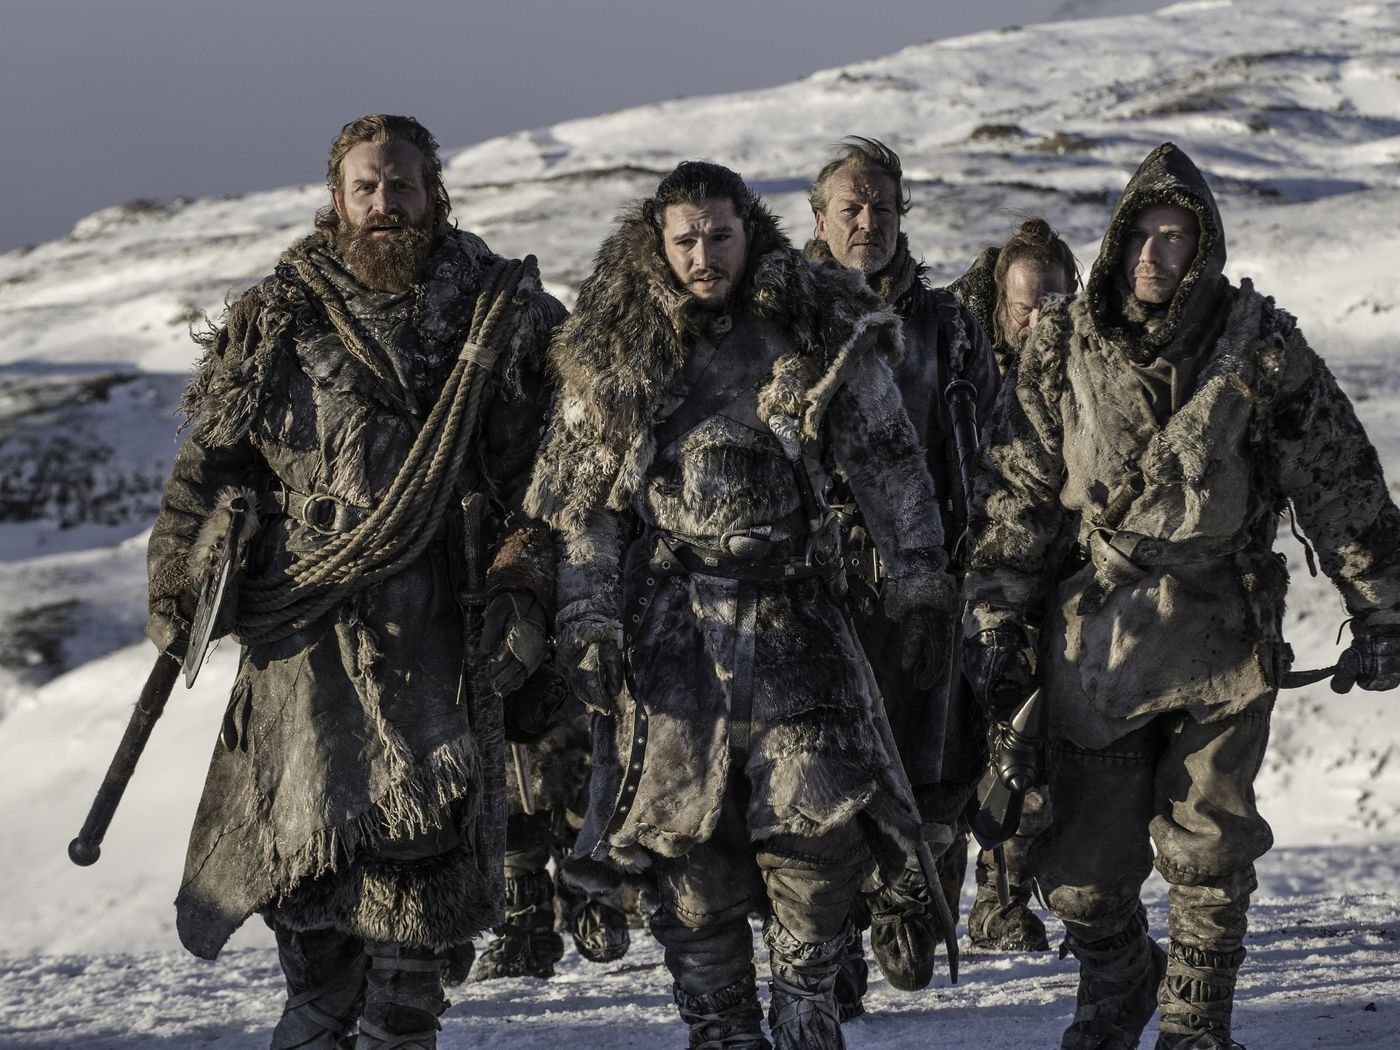 Game Of Thrones Beyond The Wall A Breakdown Of The 5 Most